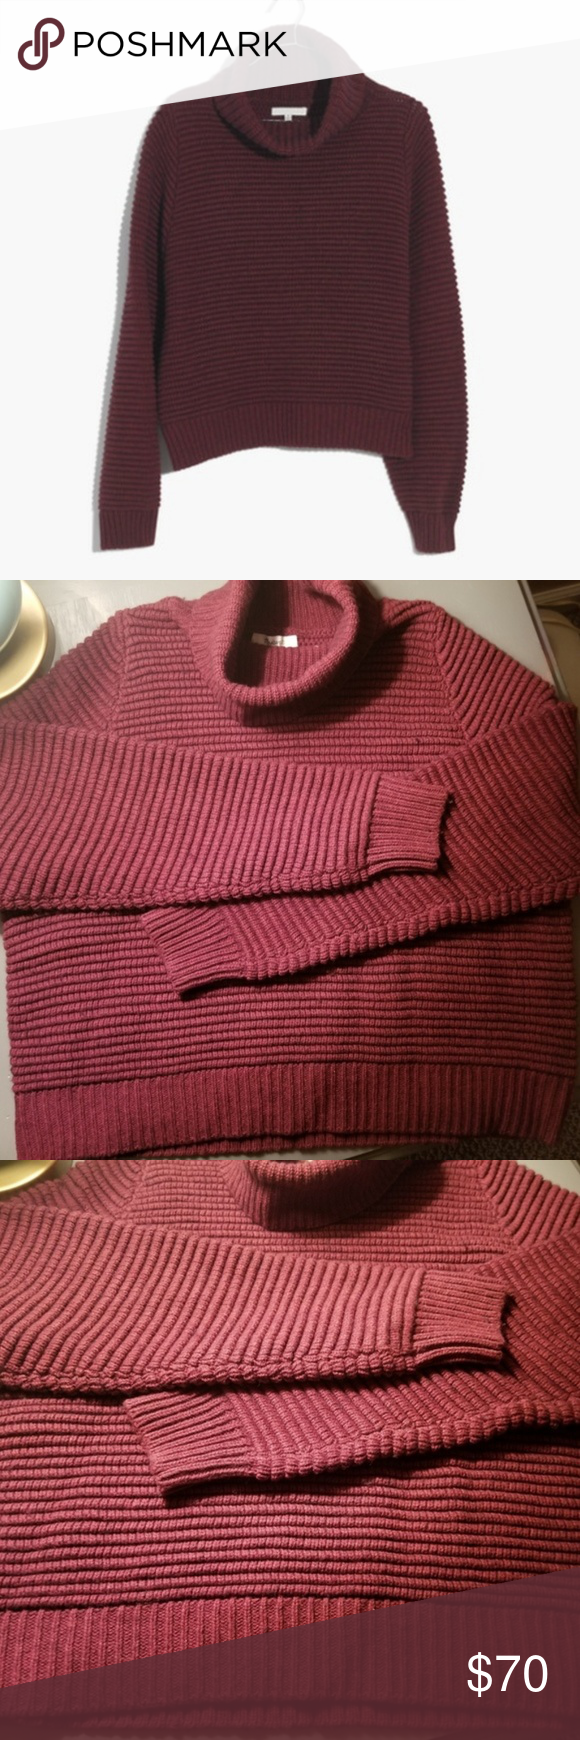 c5f3644758d NWT  Madewell Side-Button Turtleneck Sweater This cozy turtleneck sweater  is substantial enough